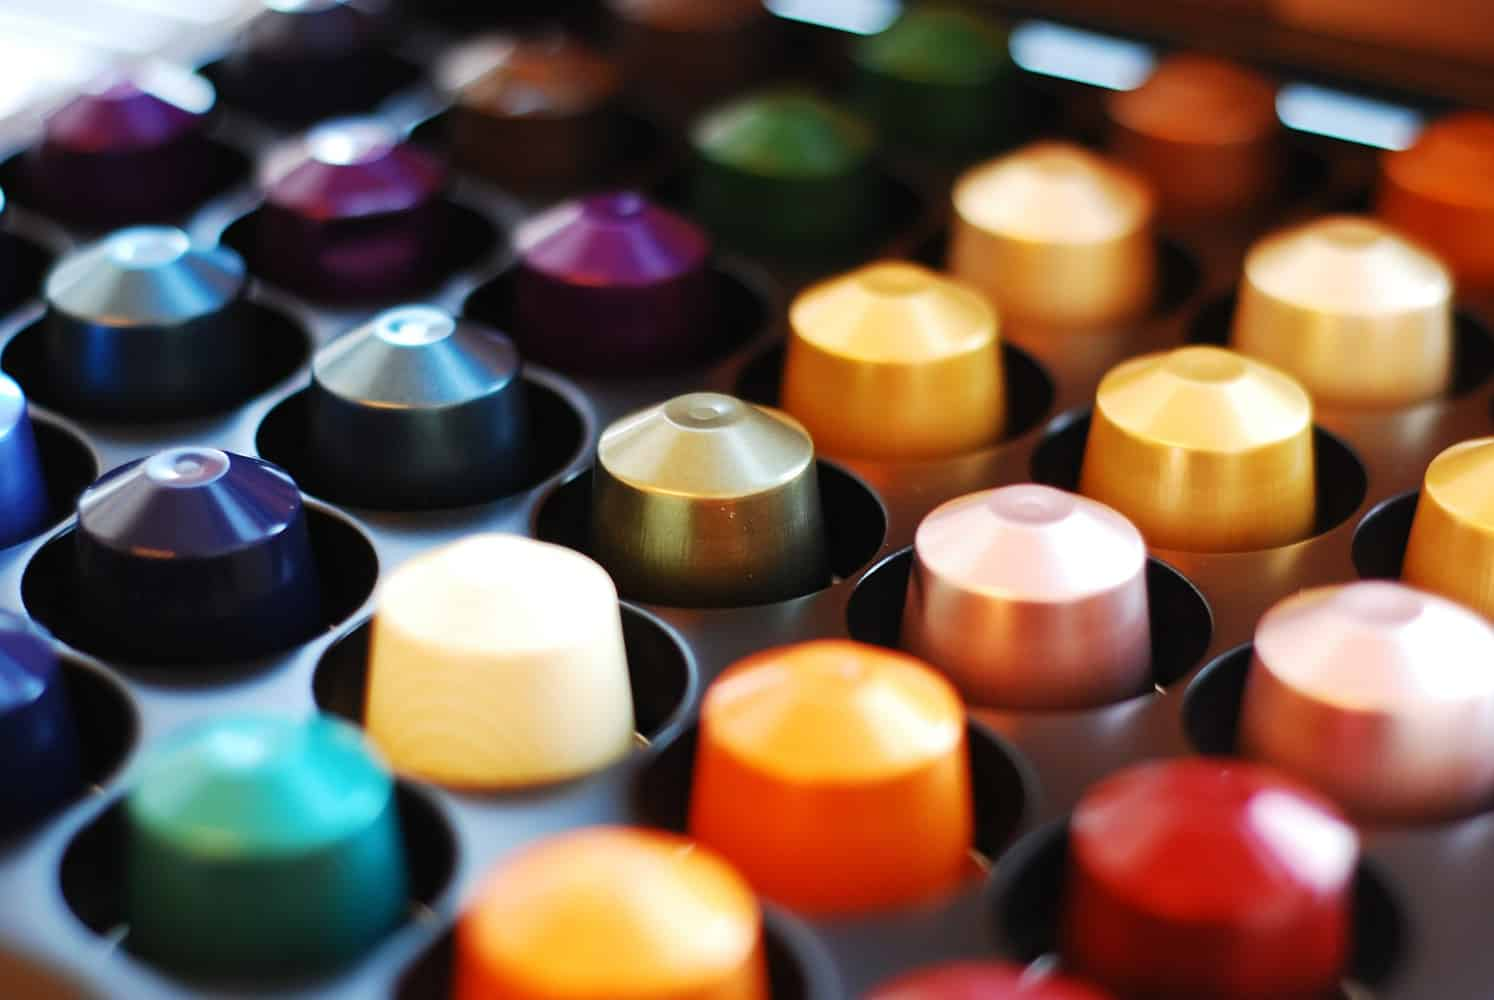 Variety of different Nespresso flavours